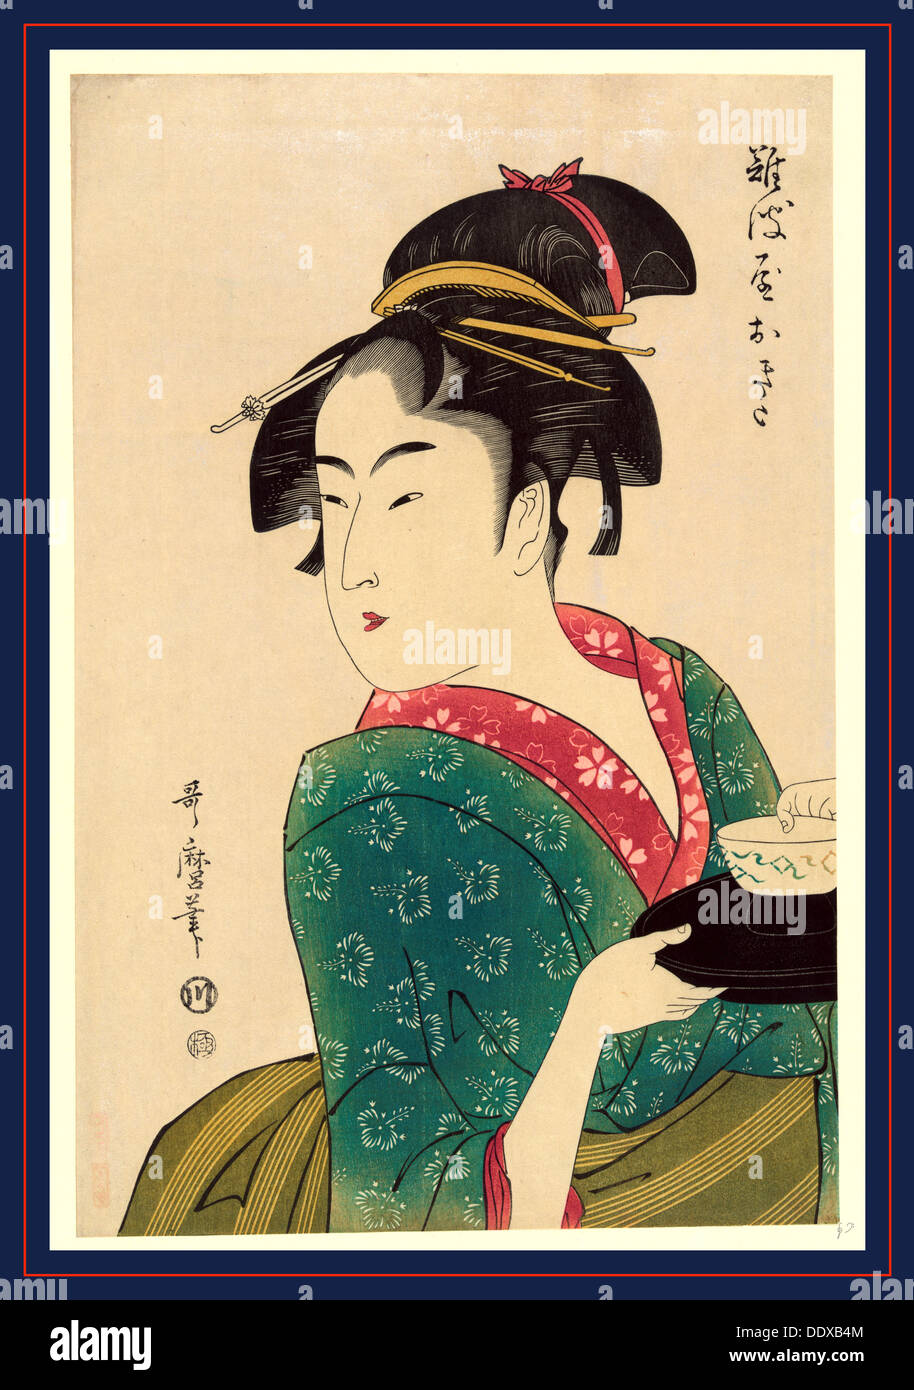 Naniwaya okita, Okita of Naniwa-ya. [1793, printed later], 1 print : woodcut, color., Print shows Naniwaya Okita Stock Photo